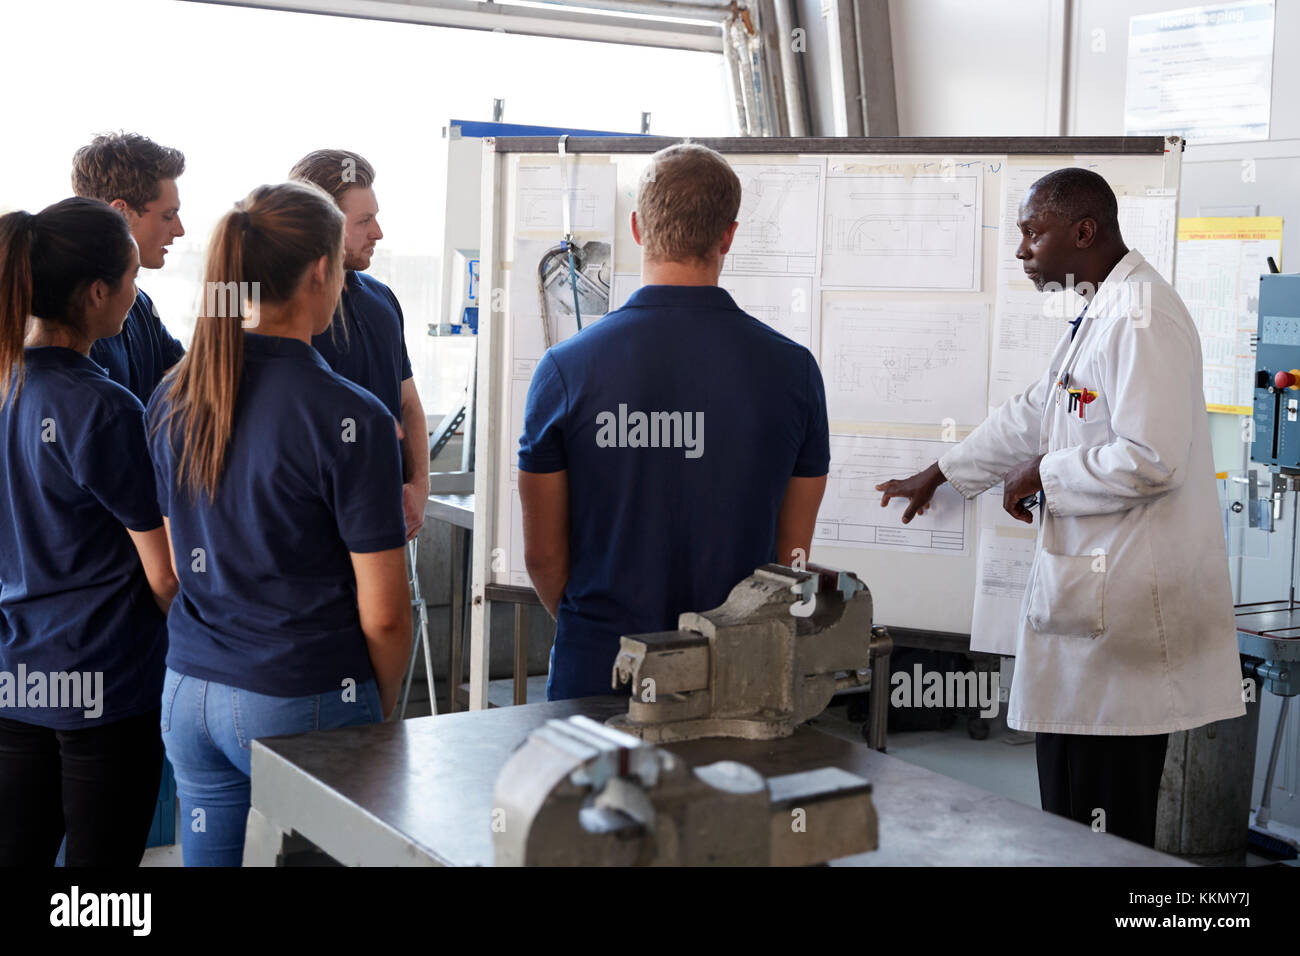 Engineer instructing apprentices at a whiteboard, close up - Stock Image